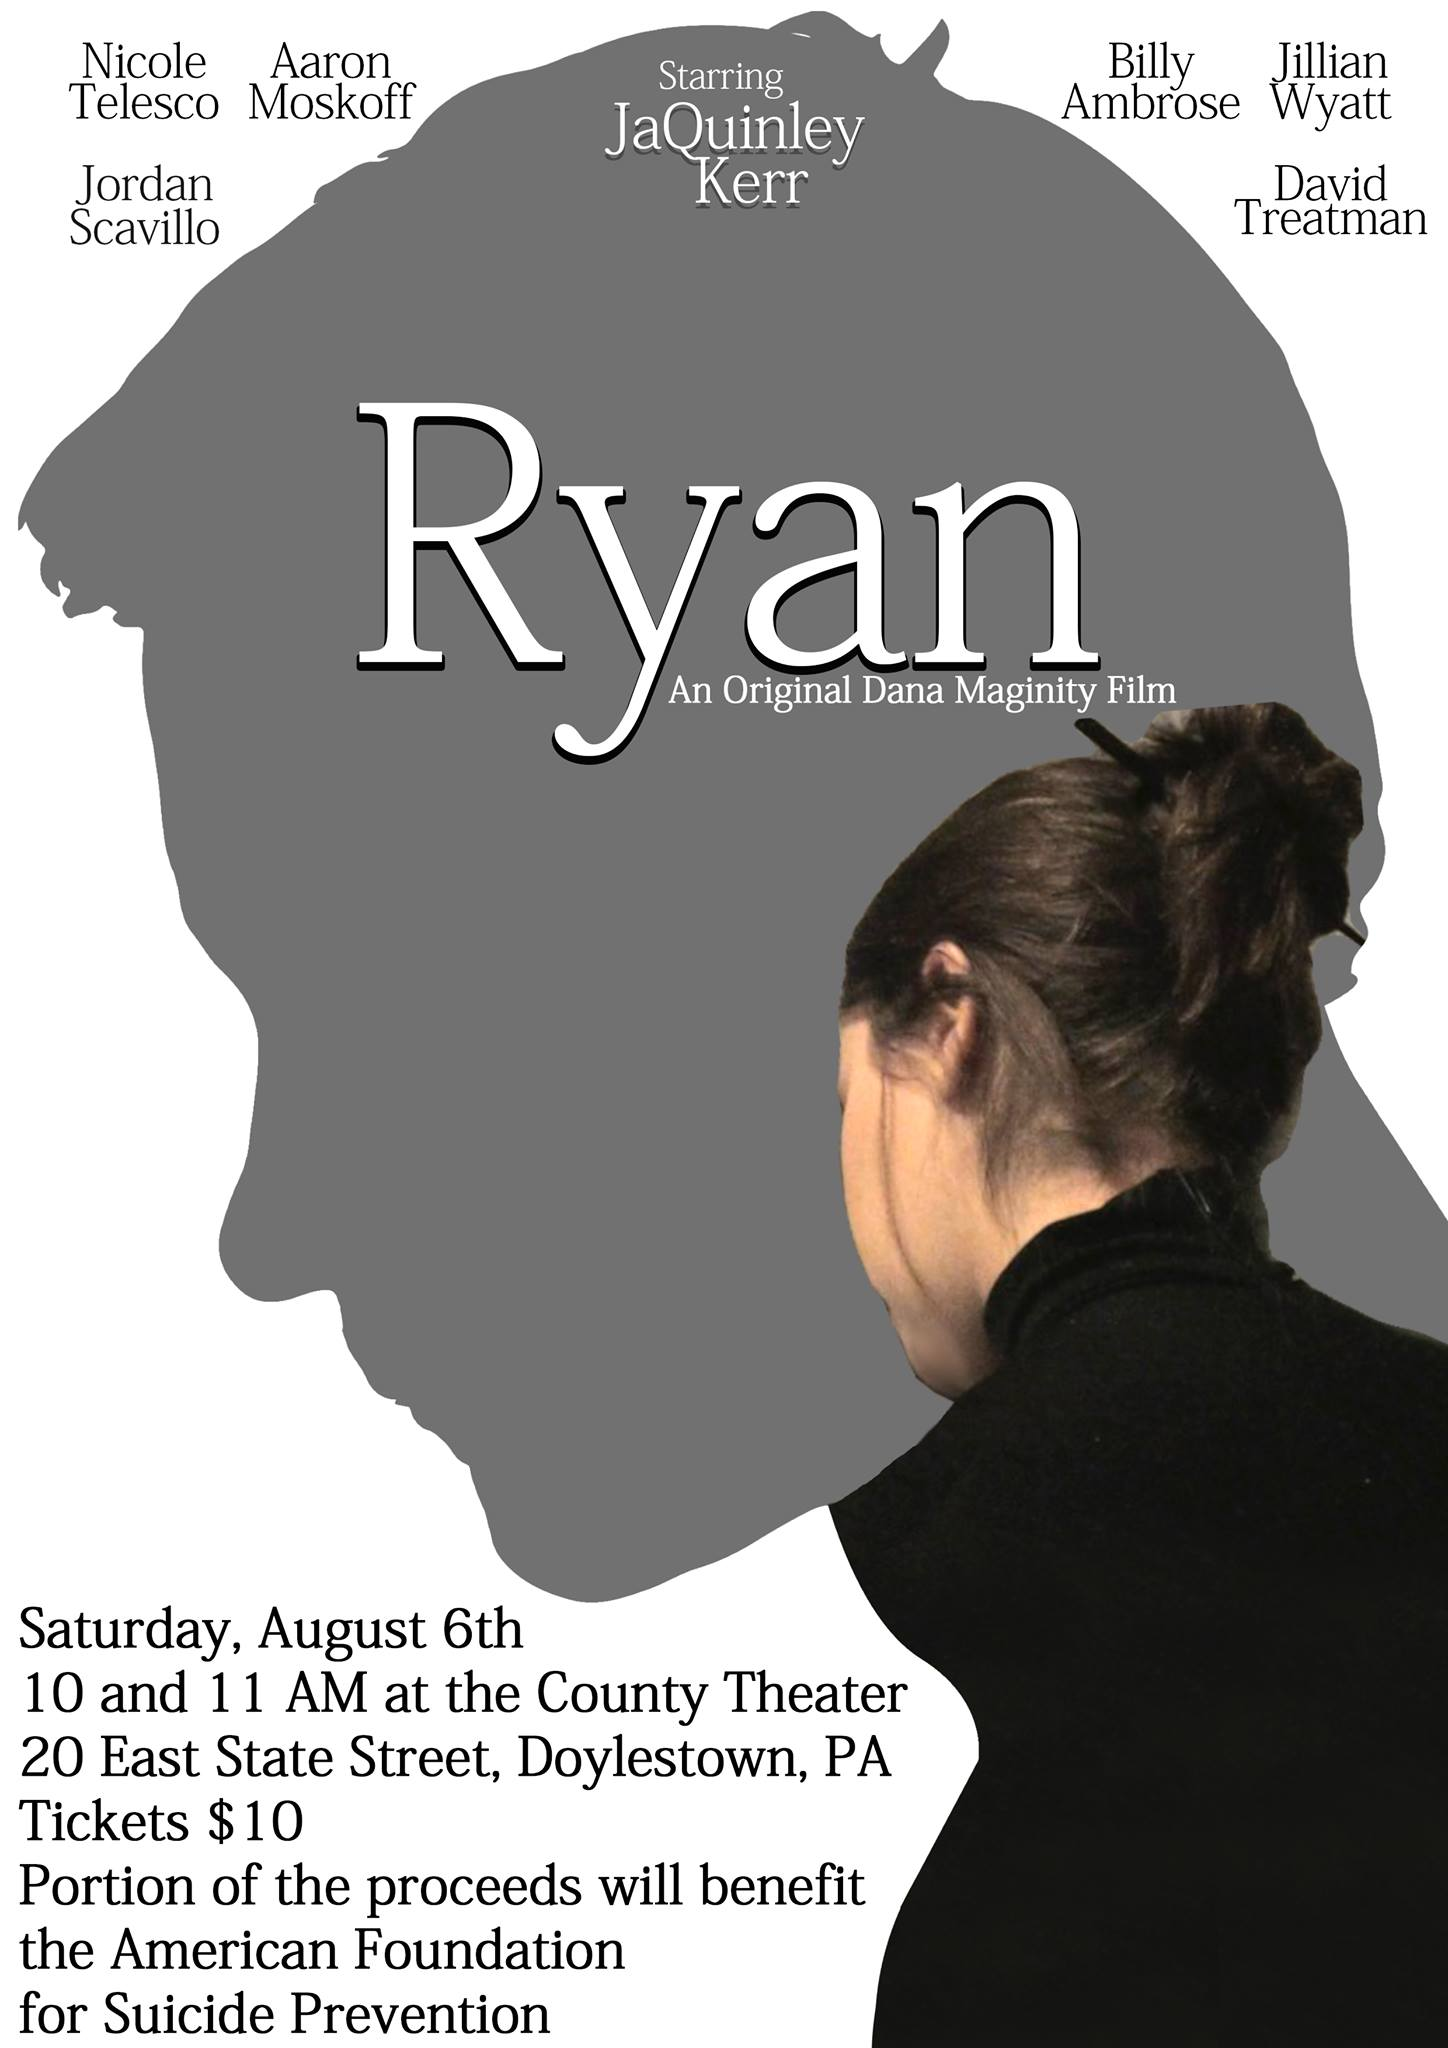 Ryan premiers at The County Theater